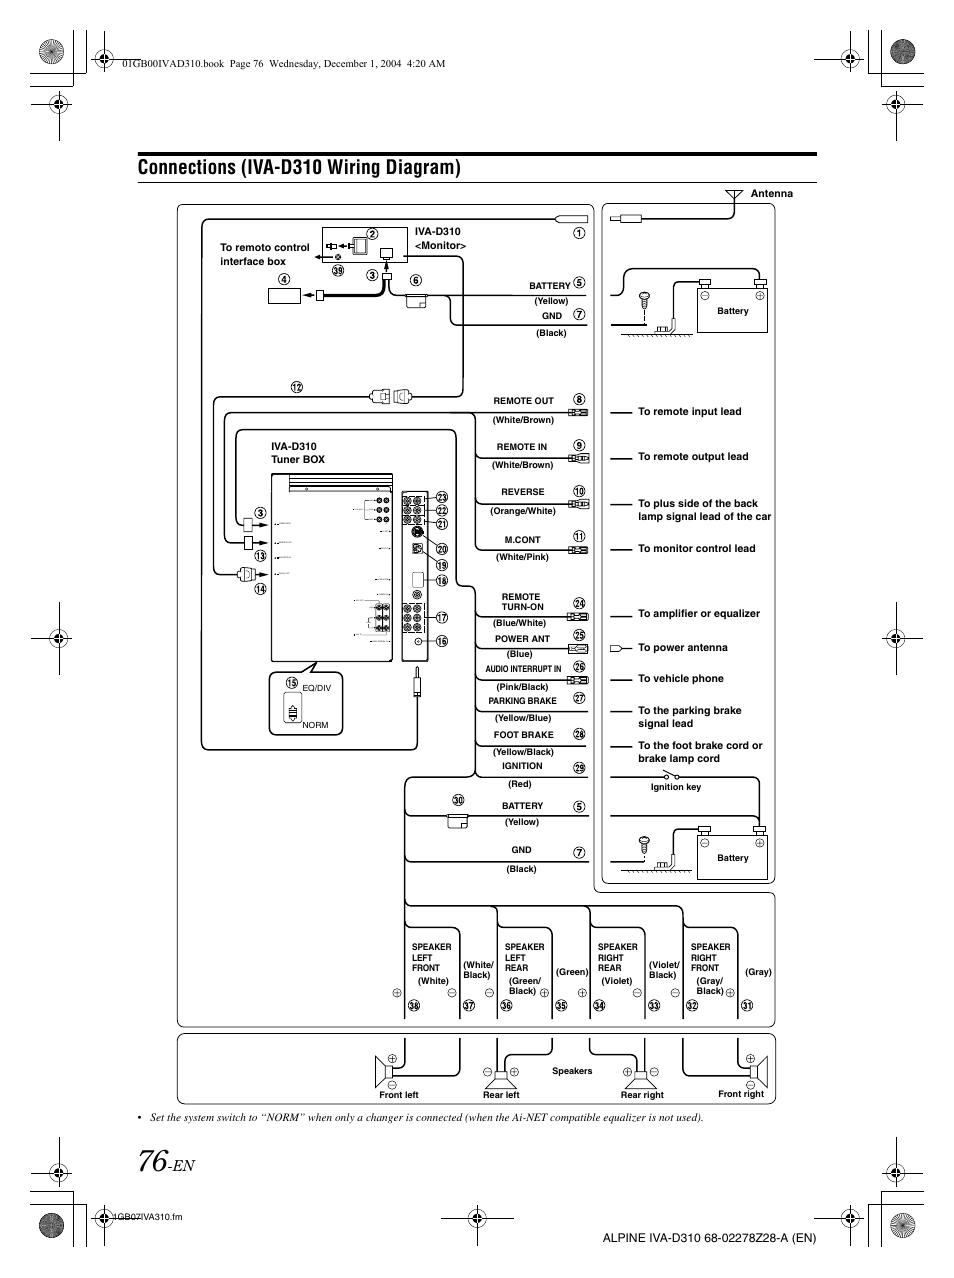 alpine iva d310 page78?resize\\\\\\\\\\\\\\\=665%2C891 john dee 410 loader wiring diagram john wiring diagrams collection lionel 164 log loader wiring diagram at alyssarenee.co